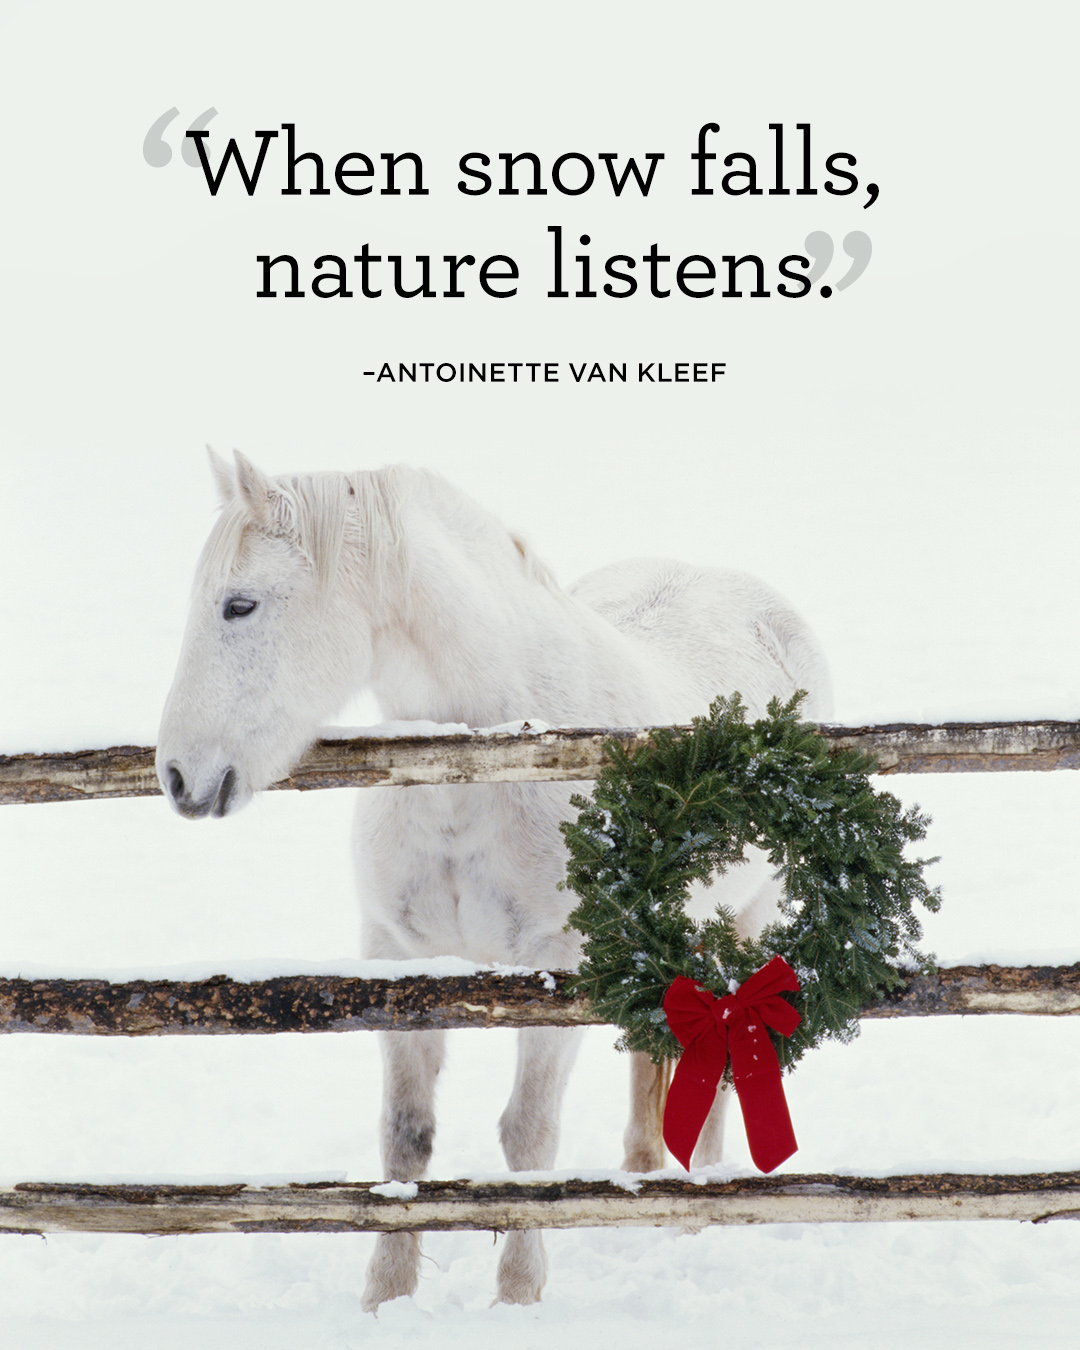 Snow Quotes And Sayings: Winter Quotes And Sayings